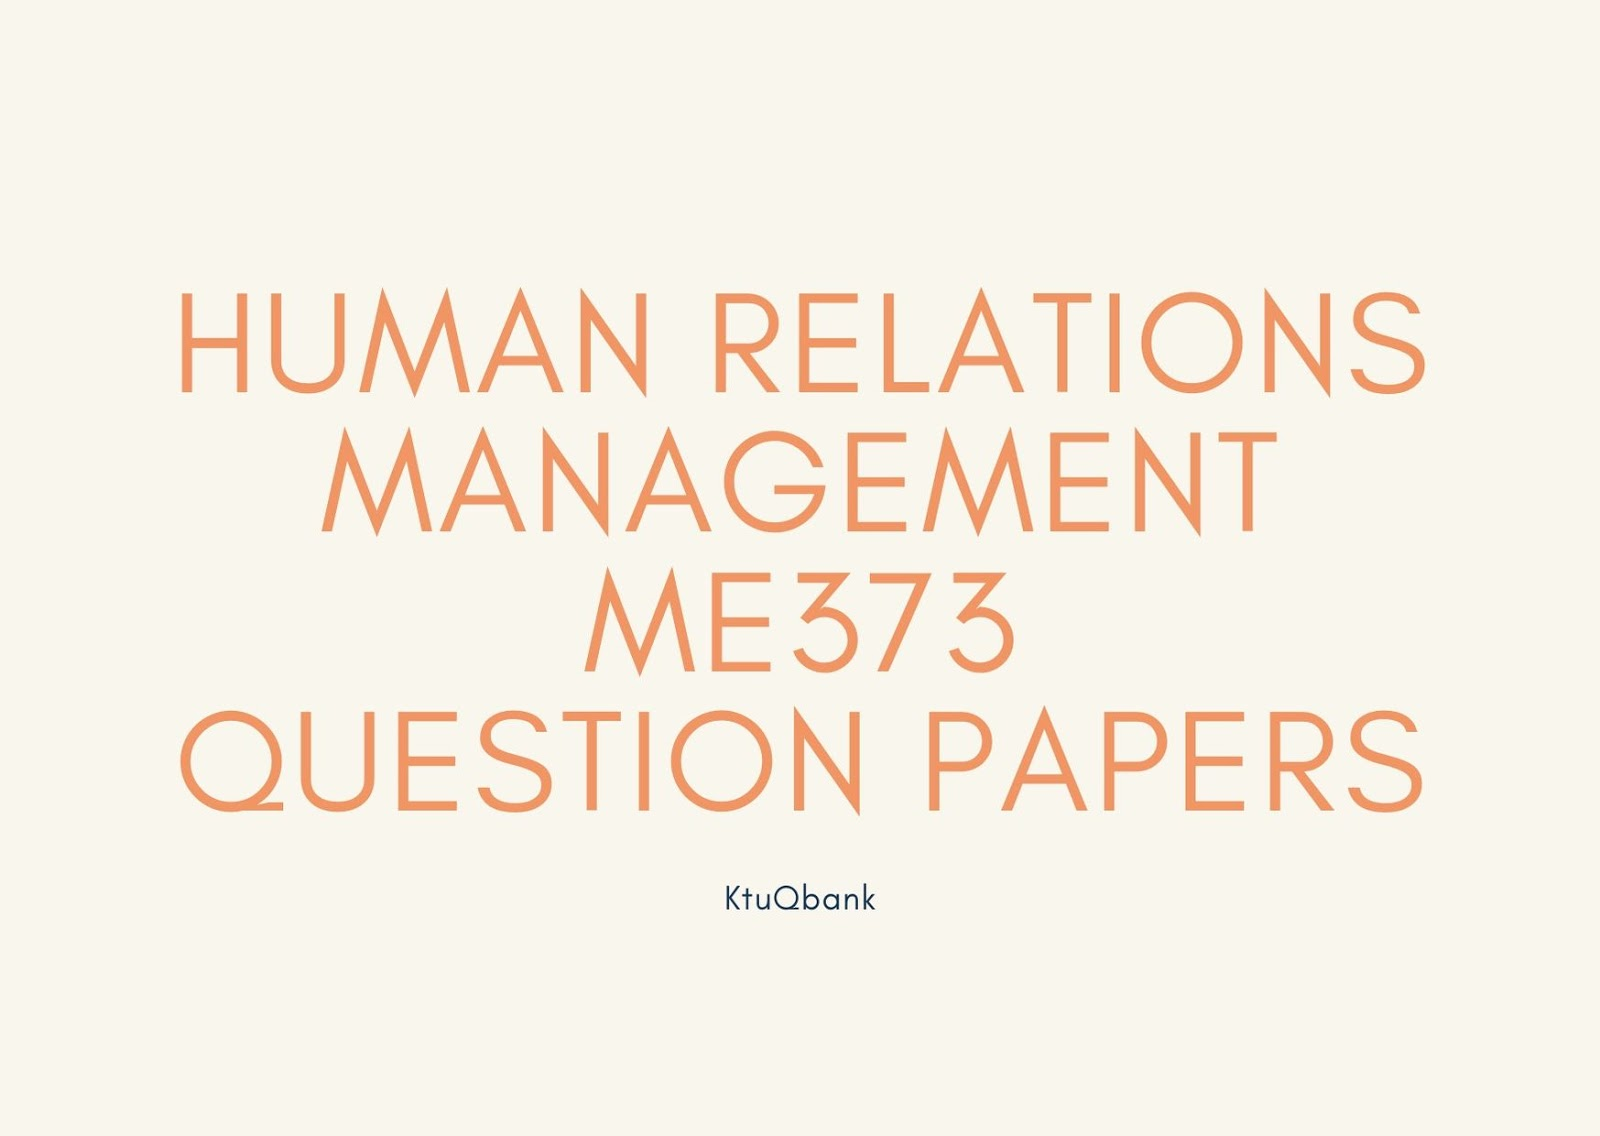 Human Relations Management | ME373 | Question Papers (2015 batch)